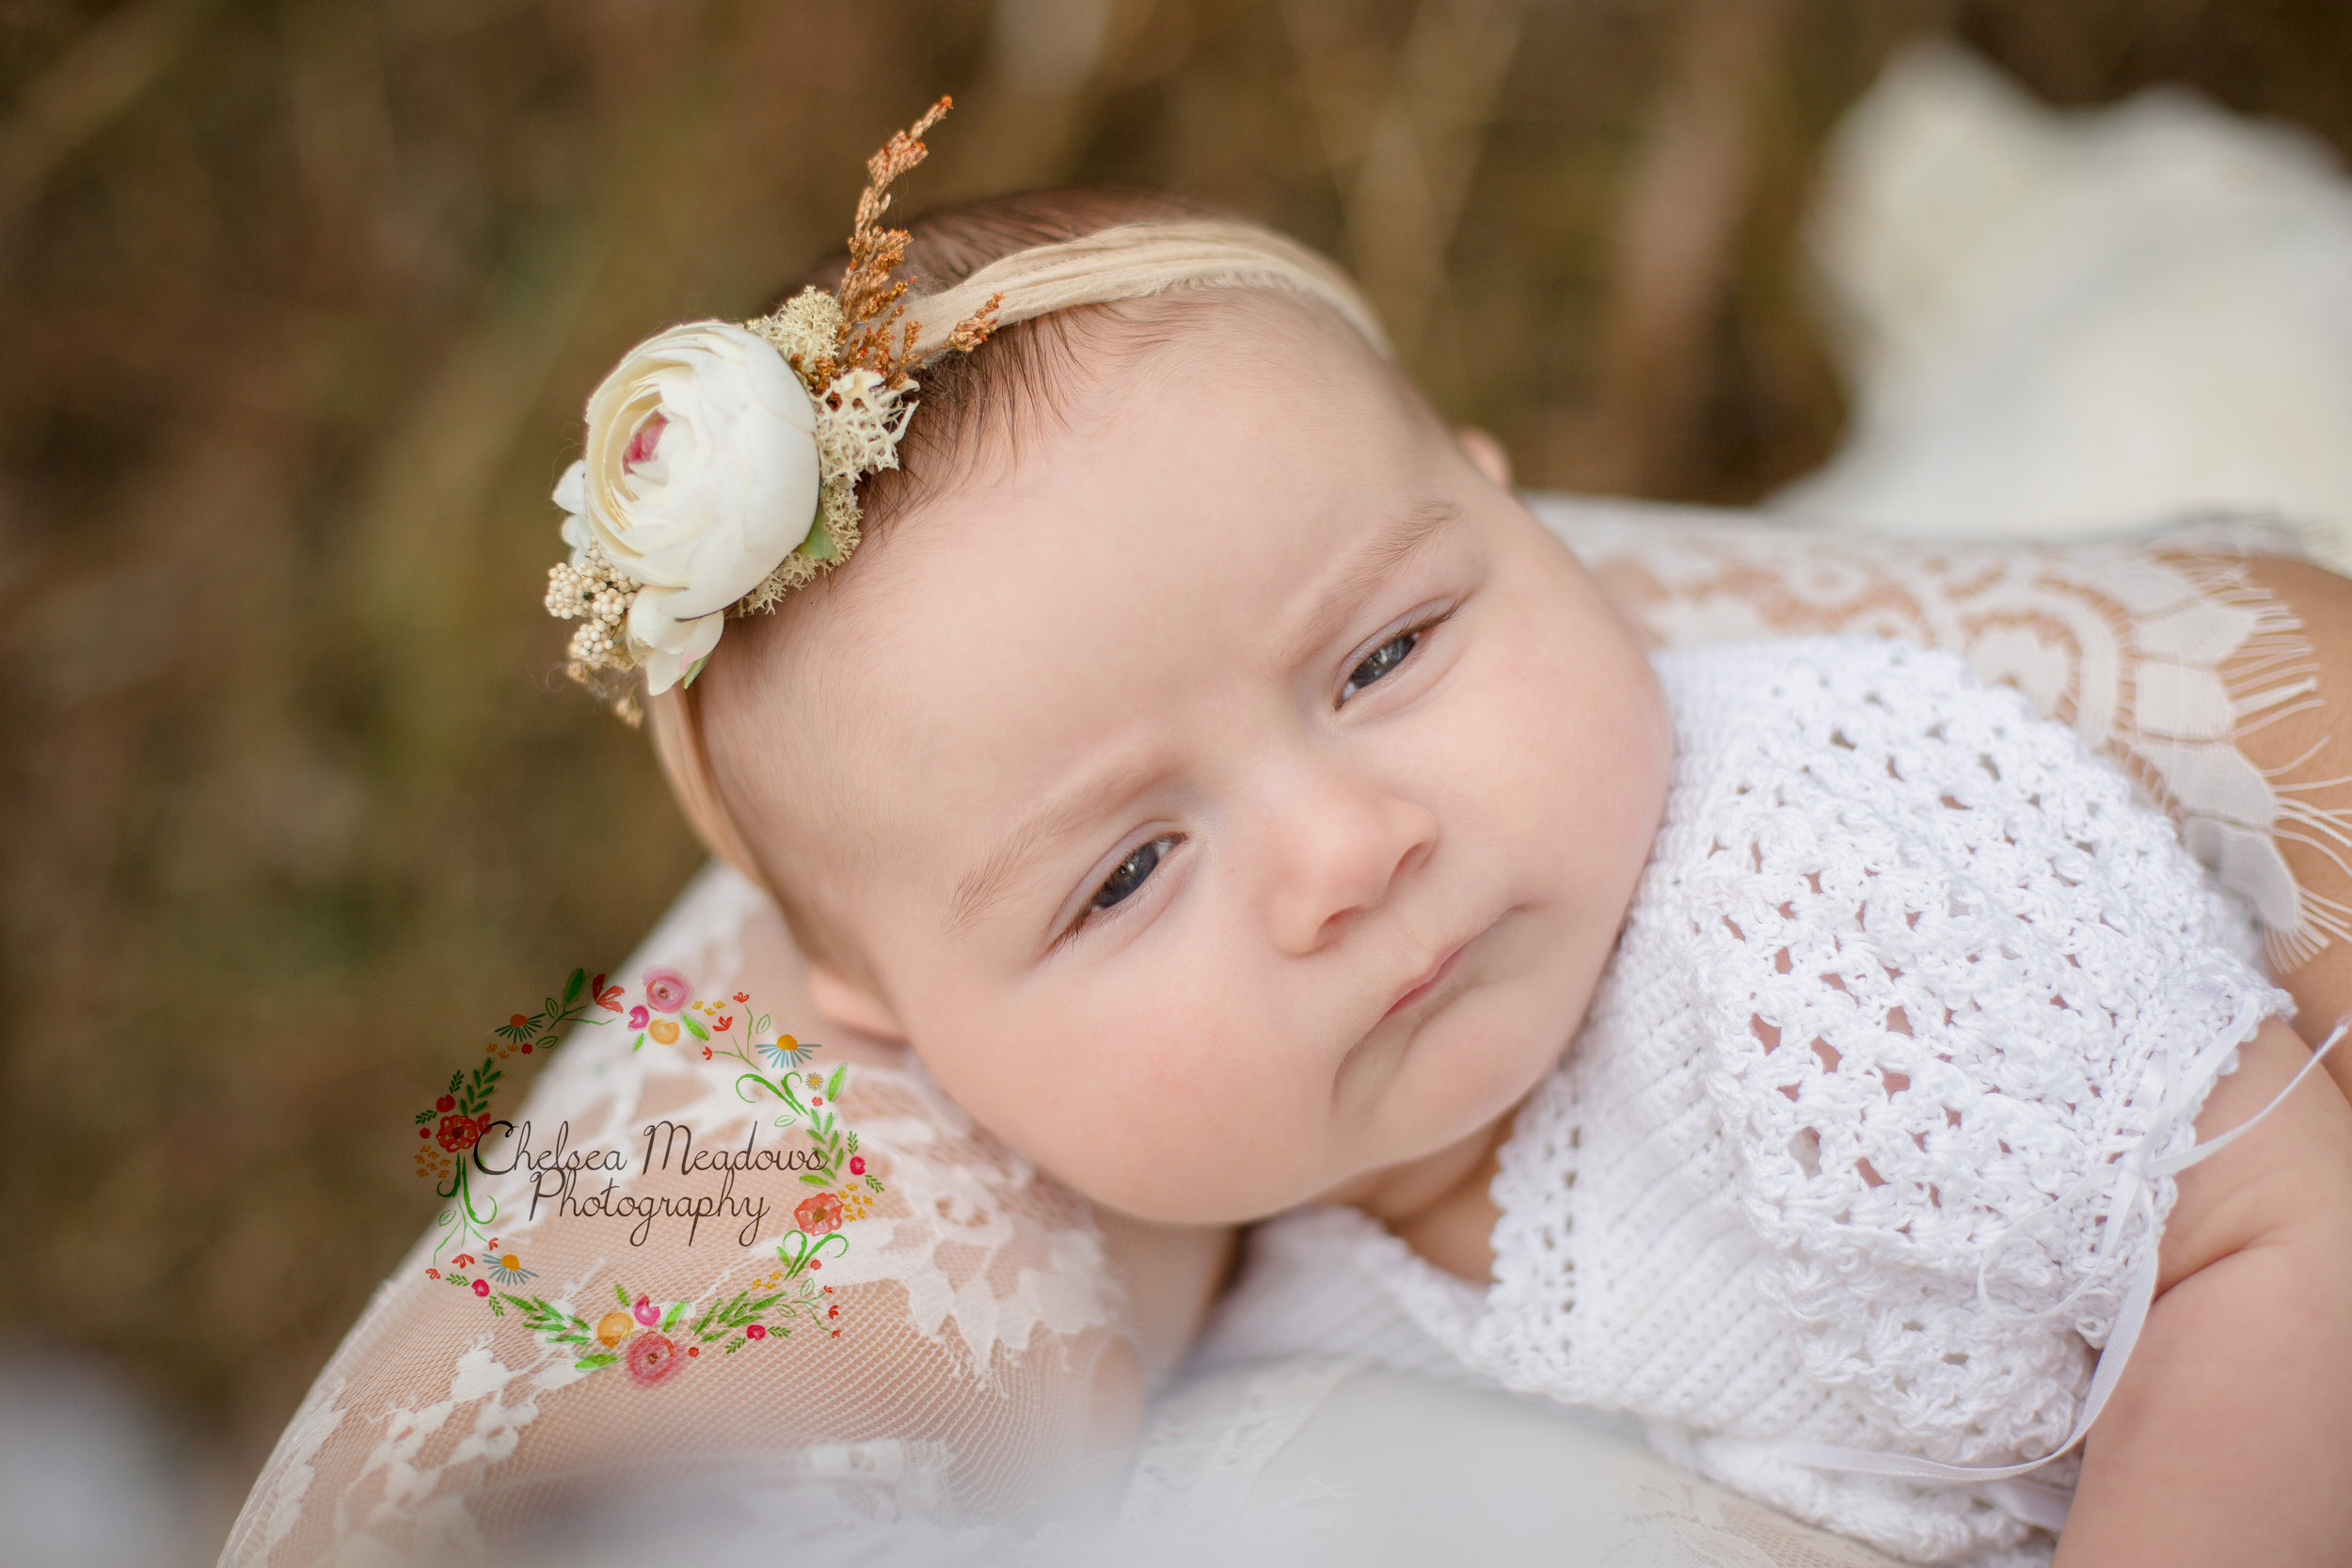 Ava's 2 Month Session - Chelsea Meadows Photography (7)_edited-1.jpg